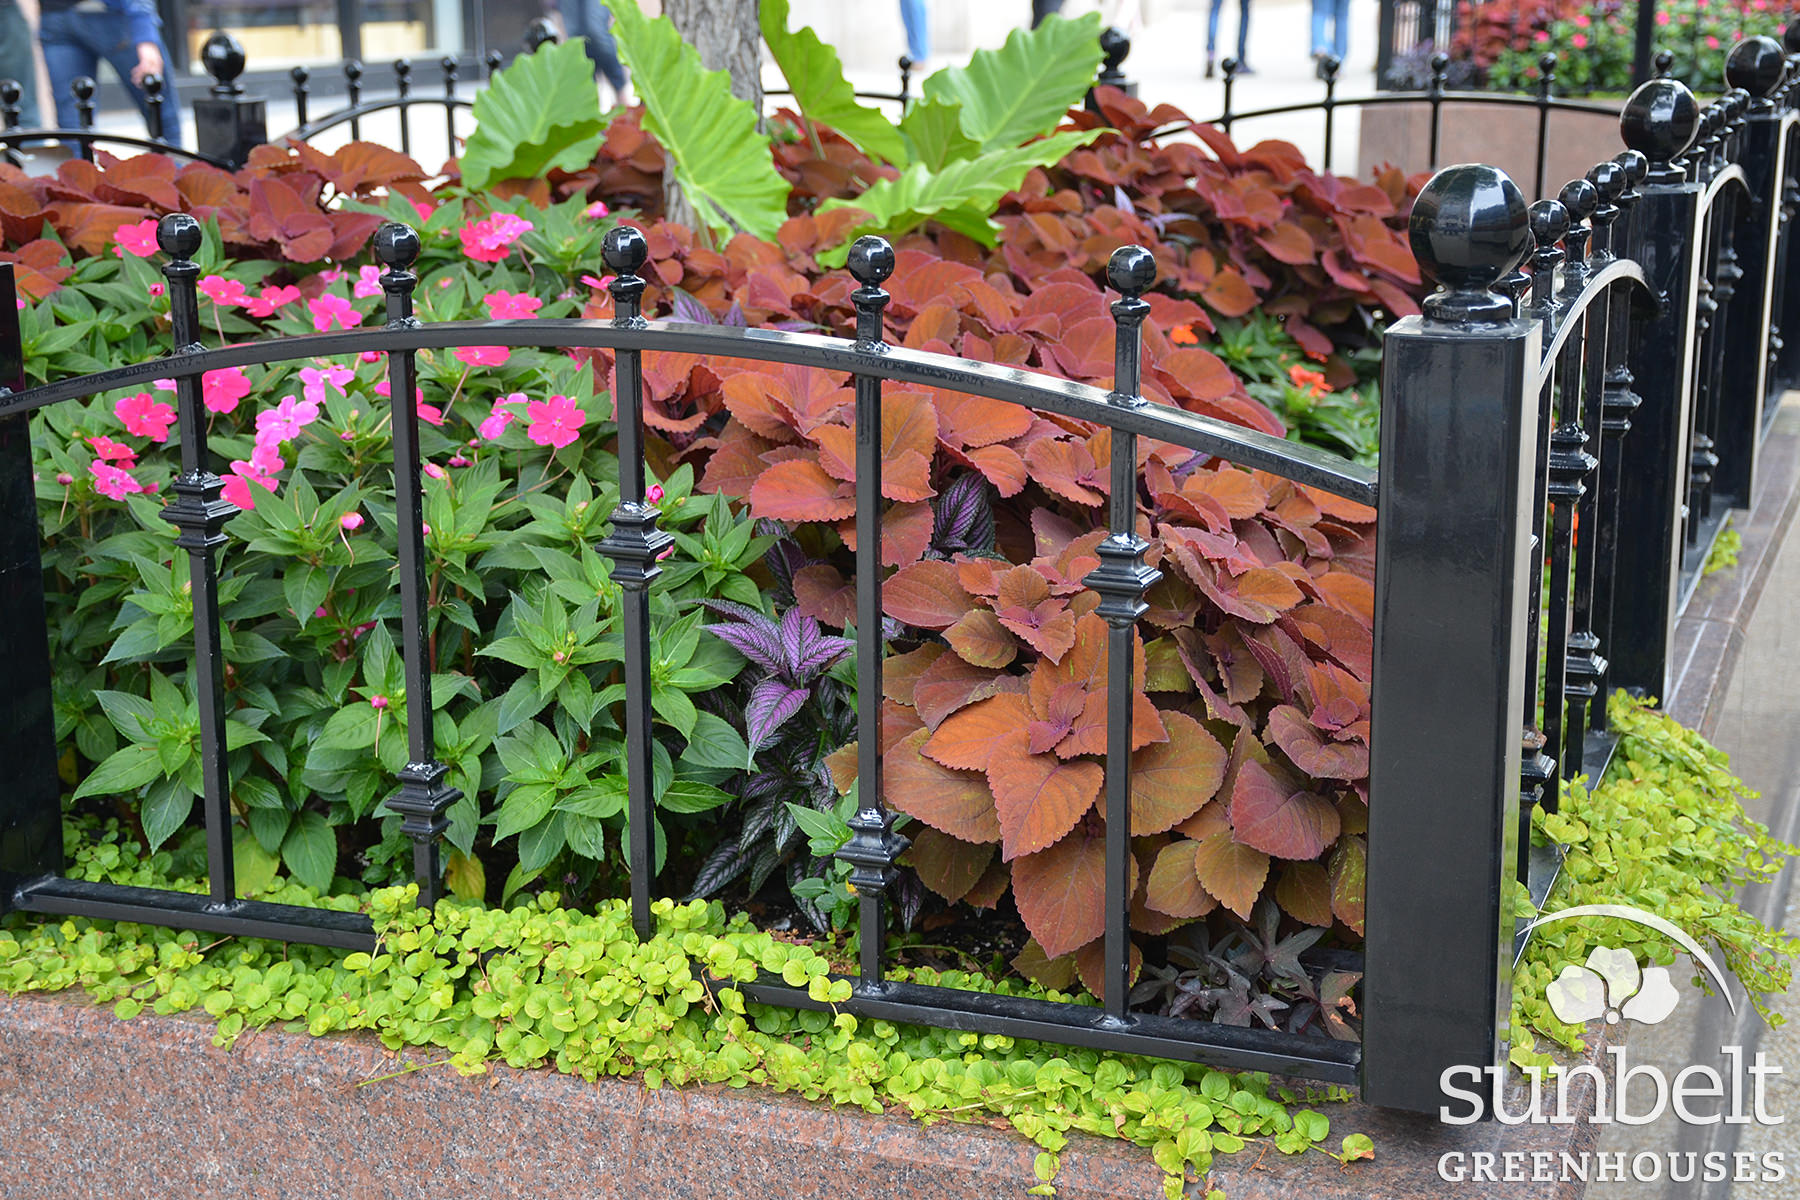 2015-08-19-chicago-landscaping-01.jpg